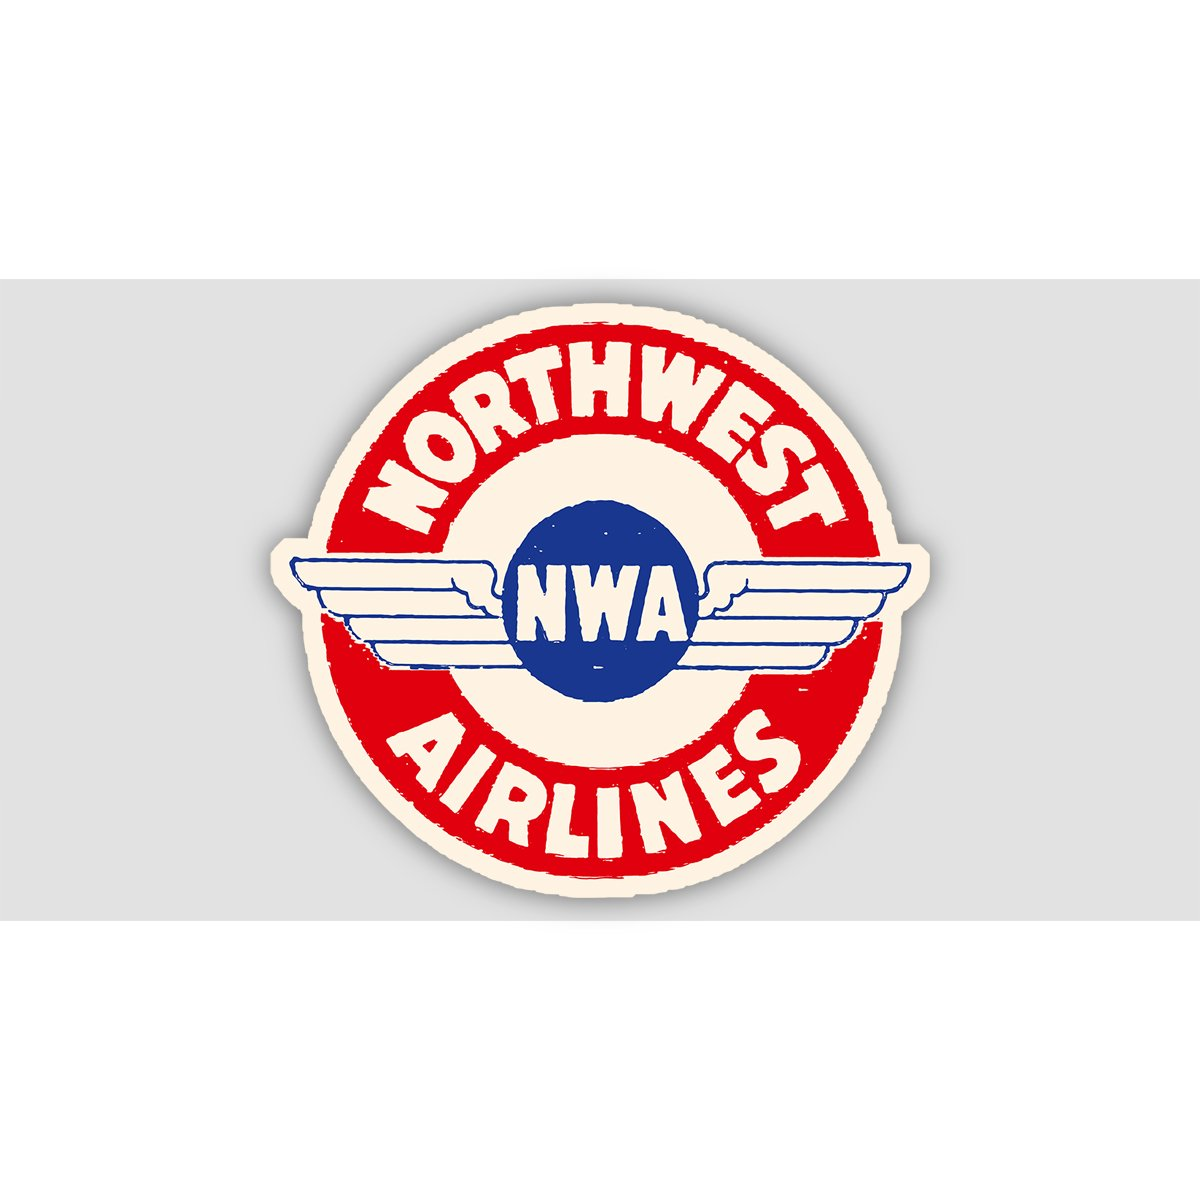 NORTHWEST AIRLINES RETRO Sticker